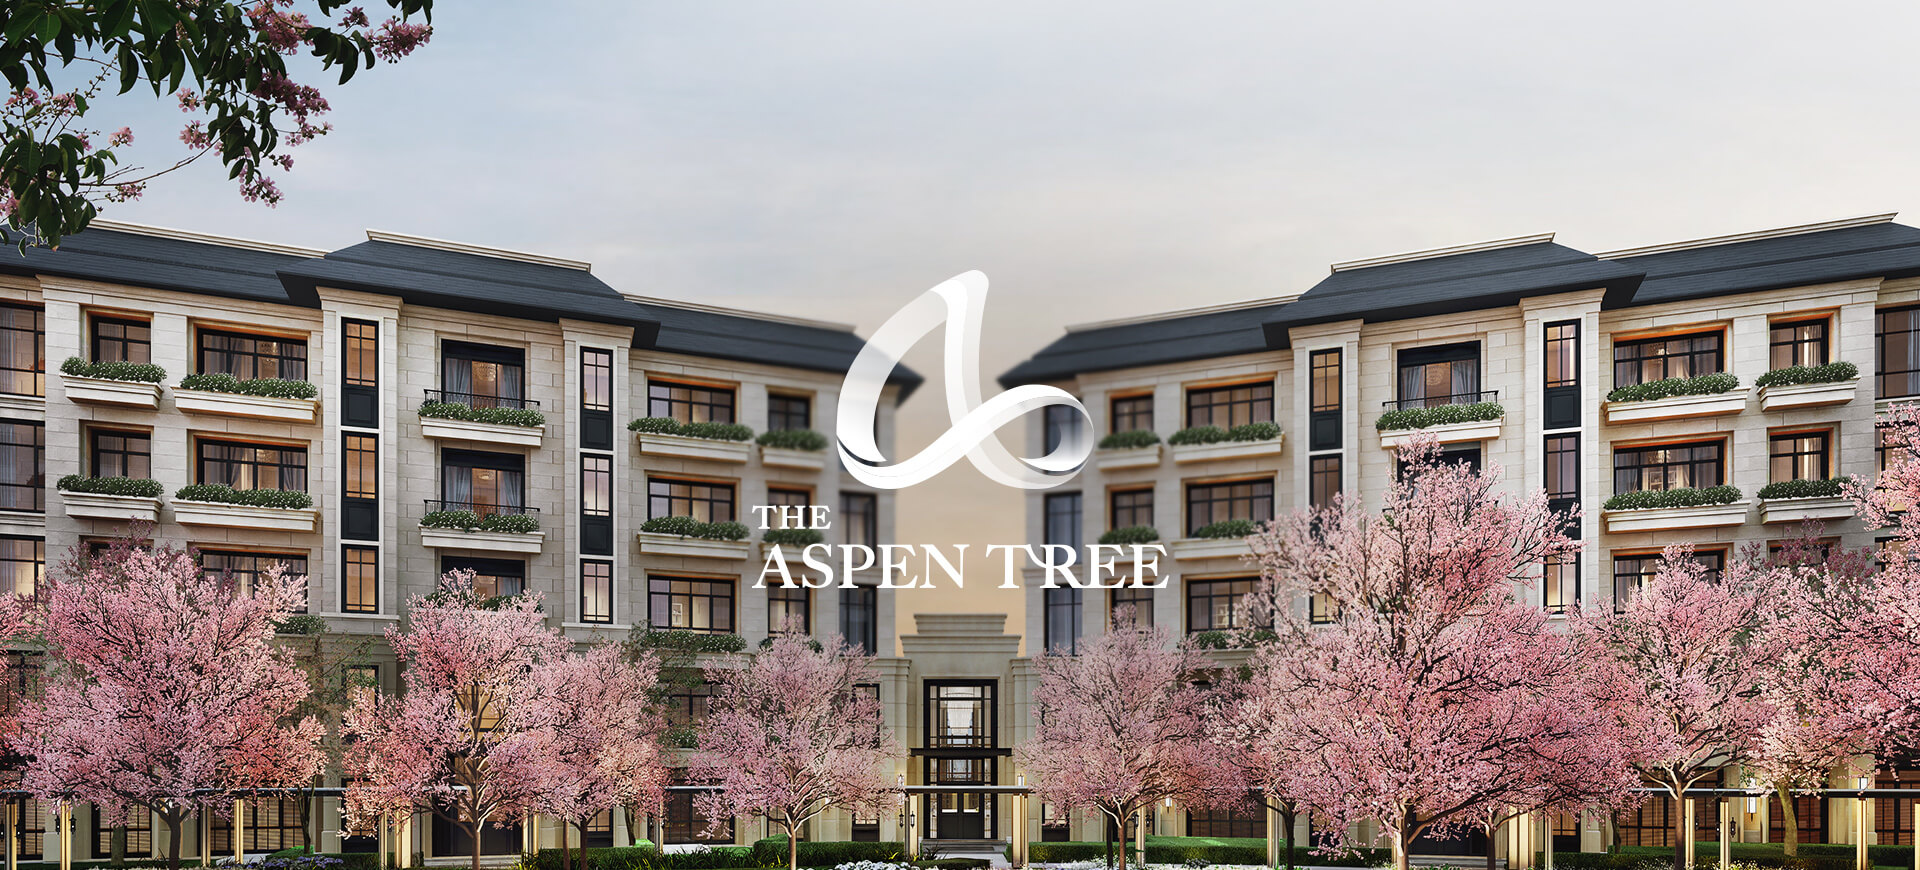 The Aspen Tree hilight desktop